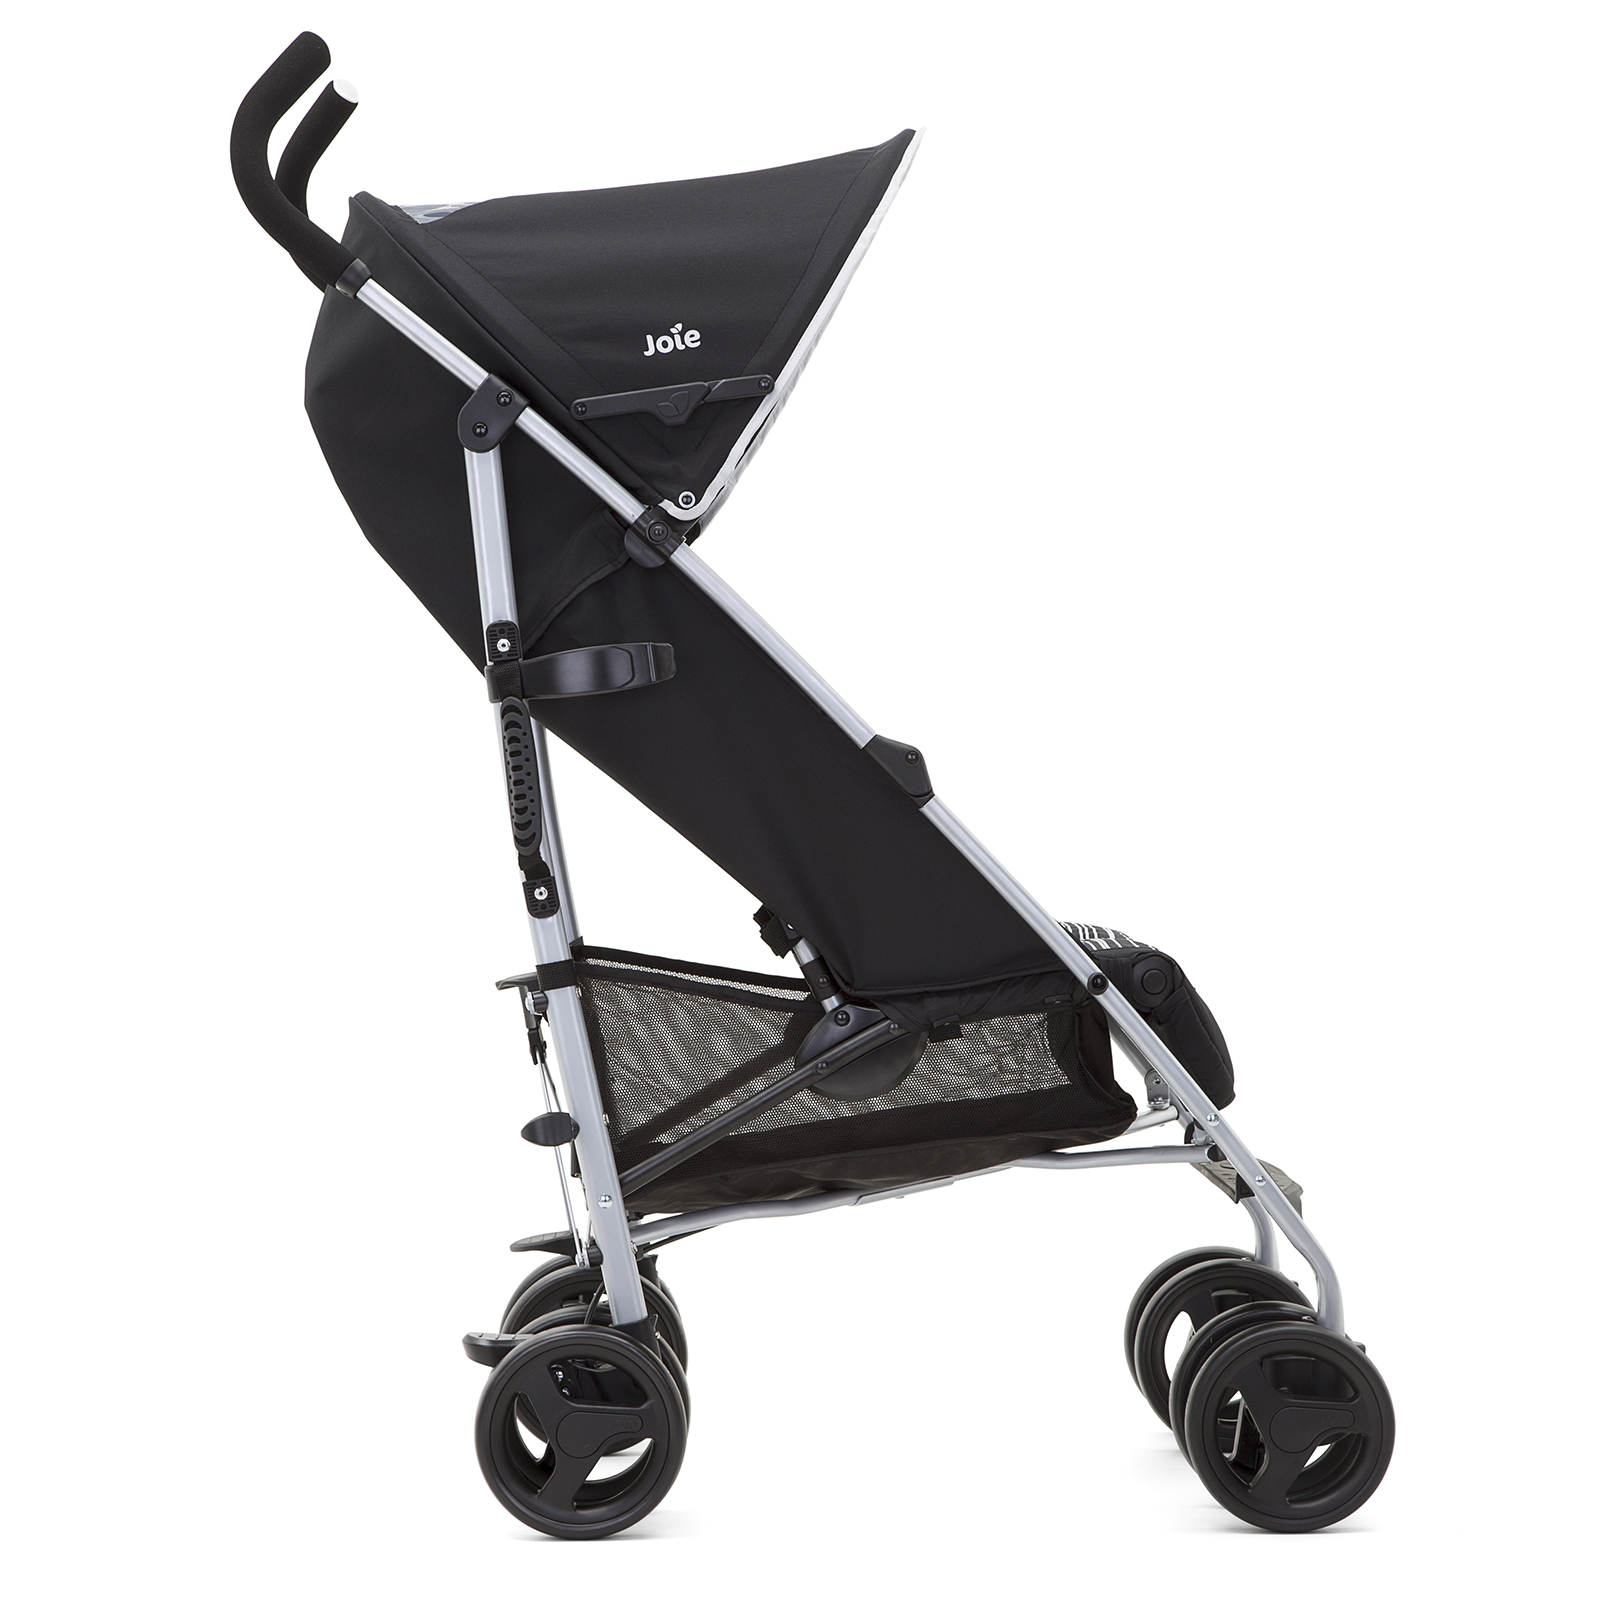 new joie skewed lines caviar nitro stroller pushchair baby buggy ebay. Black Bedroom Furniture Sets. Home Design Ideas